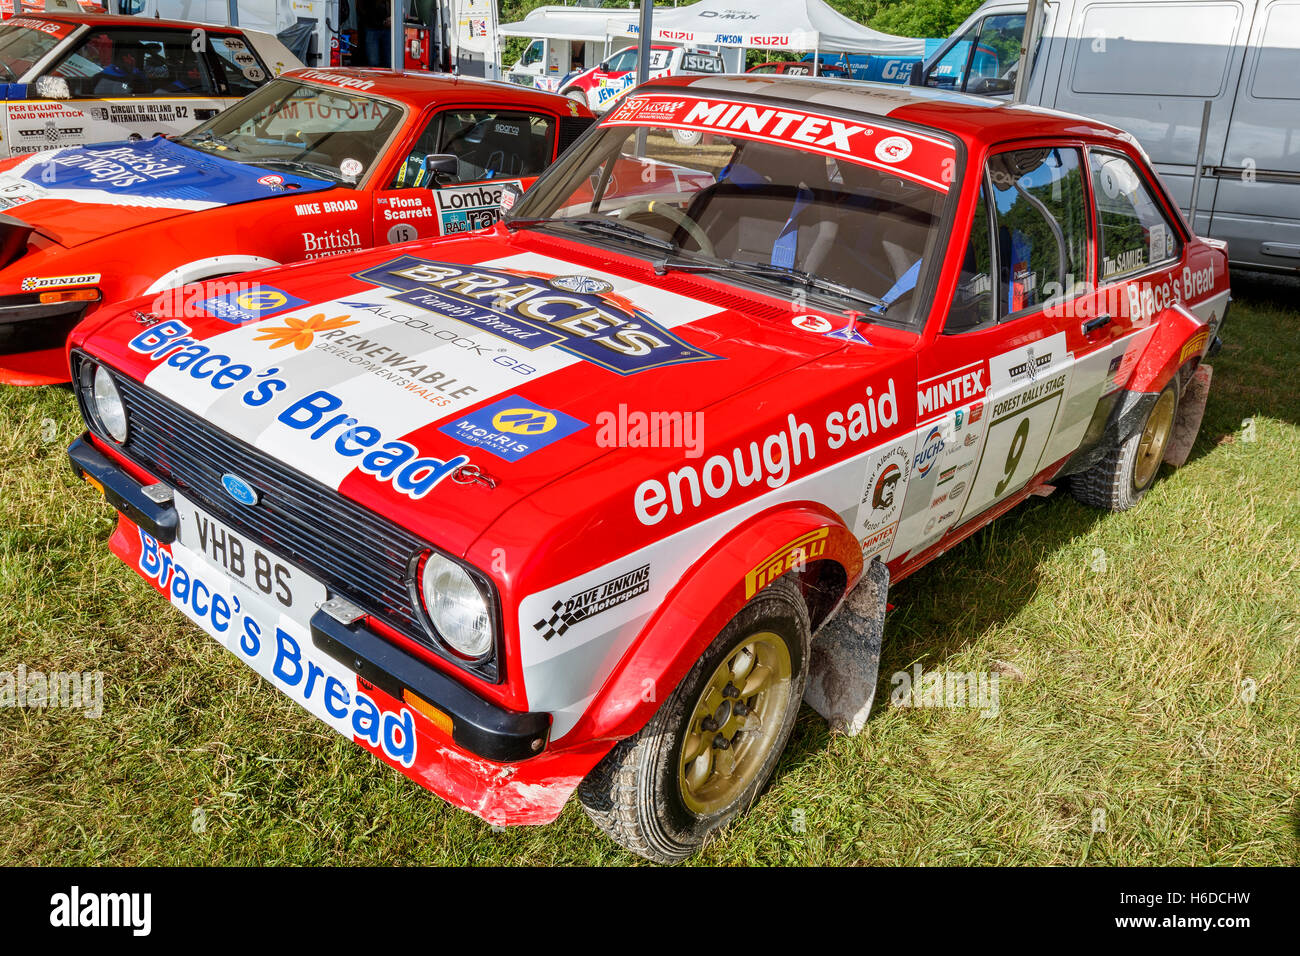 1979 Ford Escort MkII of Jonathan Brace at the 2016 Goodwood Festival of Speed, Sussex, UK - Stock Image